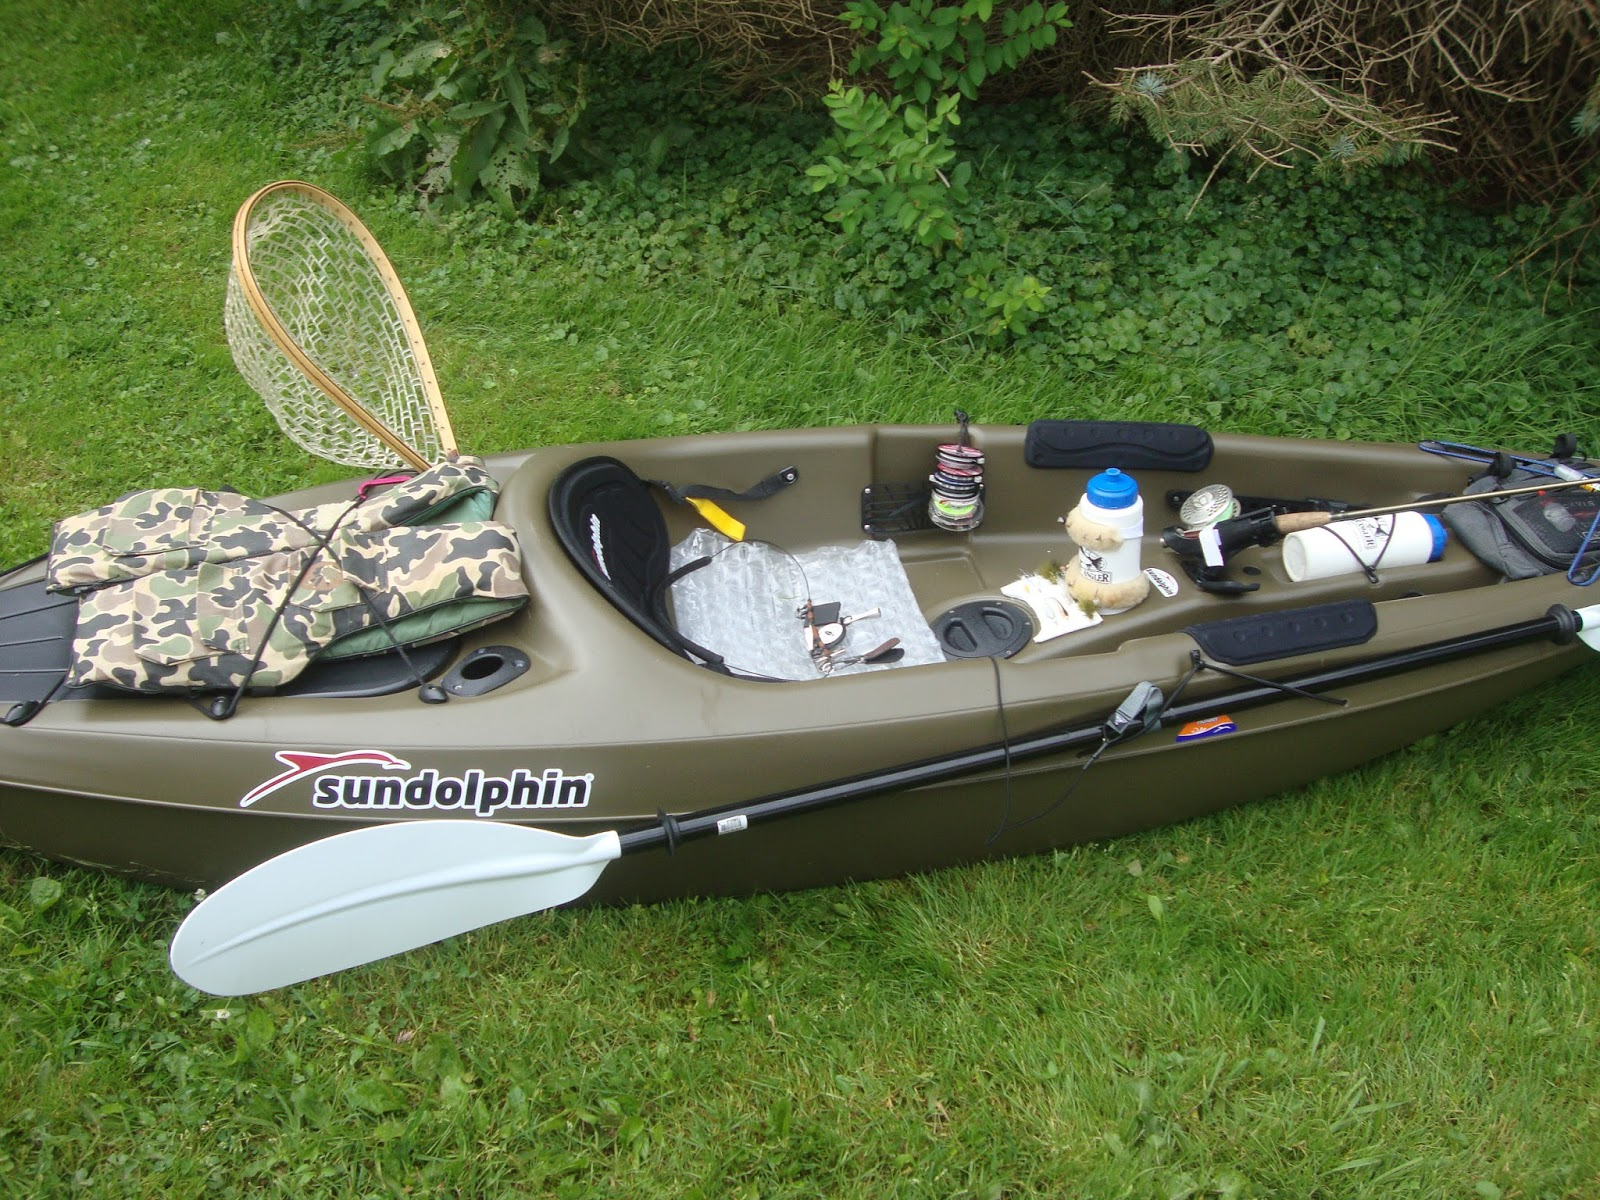 Streamside tales sun dolphin kayak experienced review for Sun dolphin fishing kayak